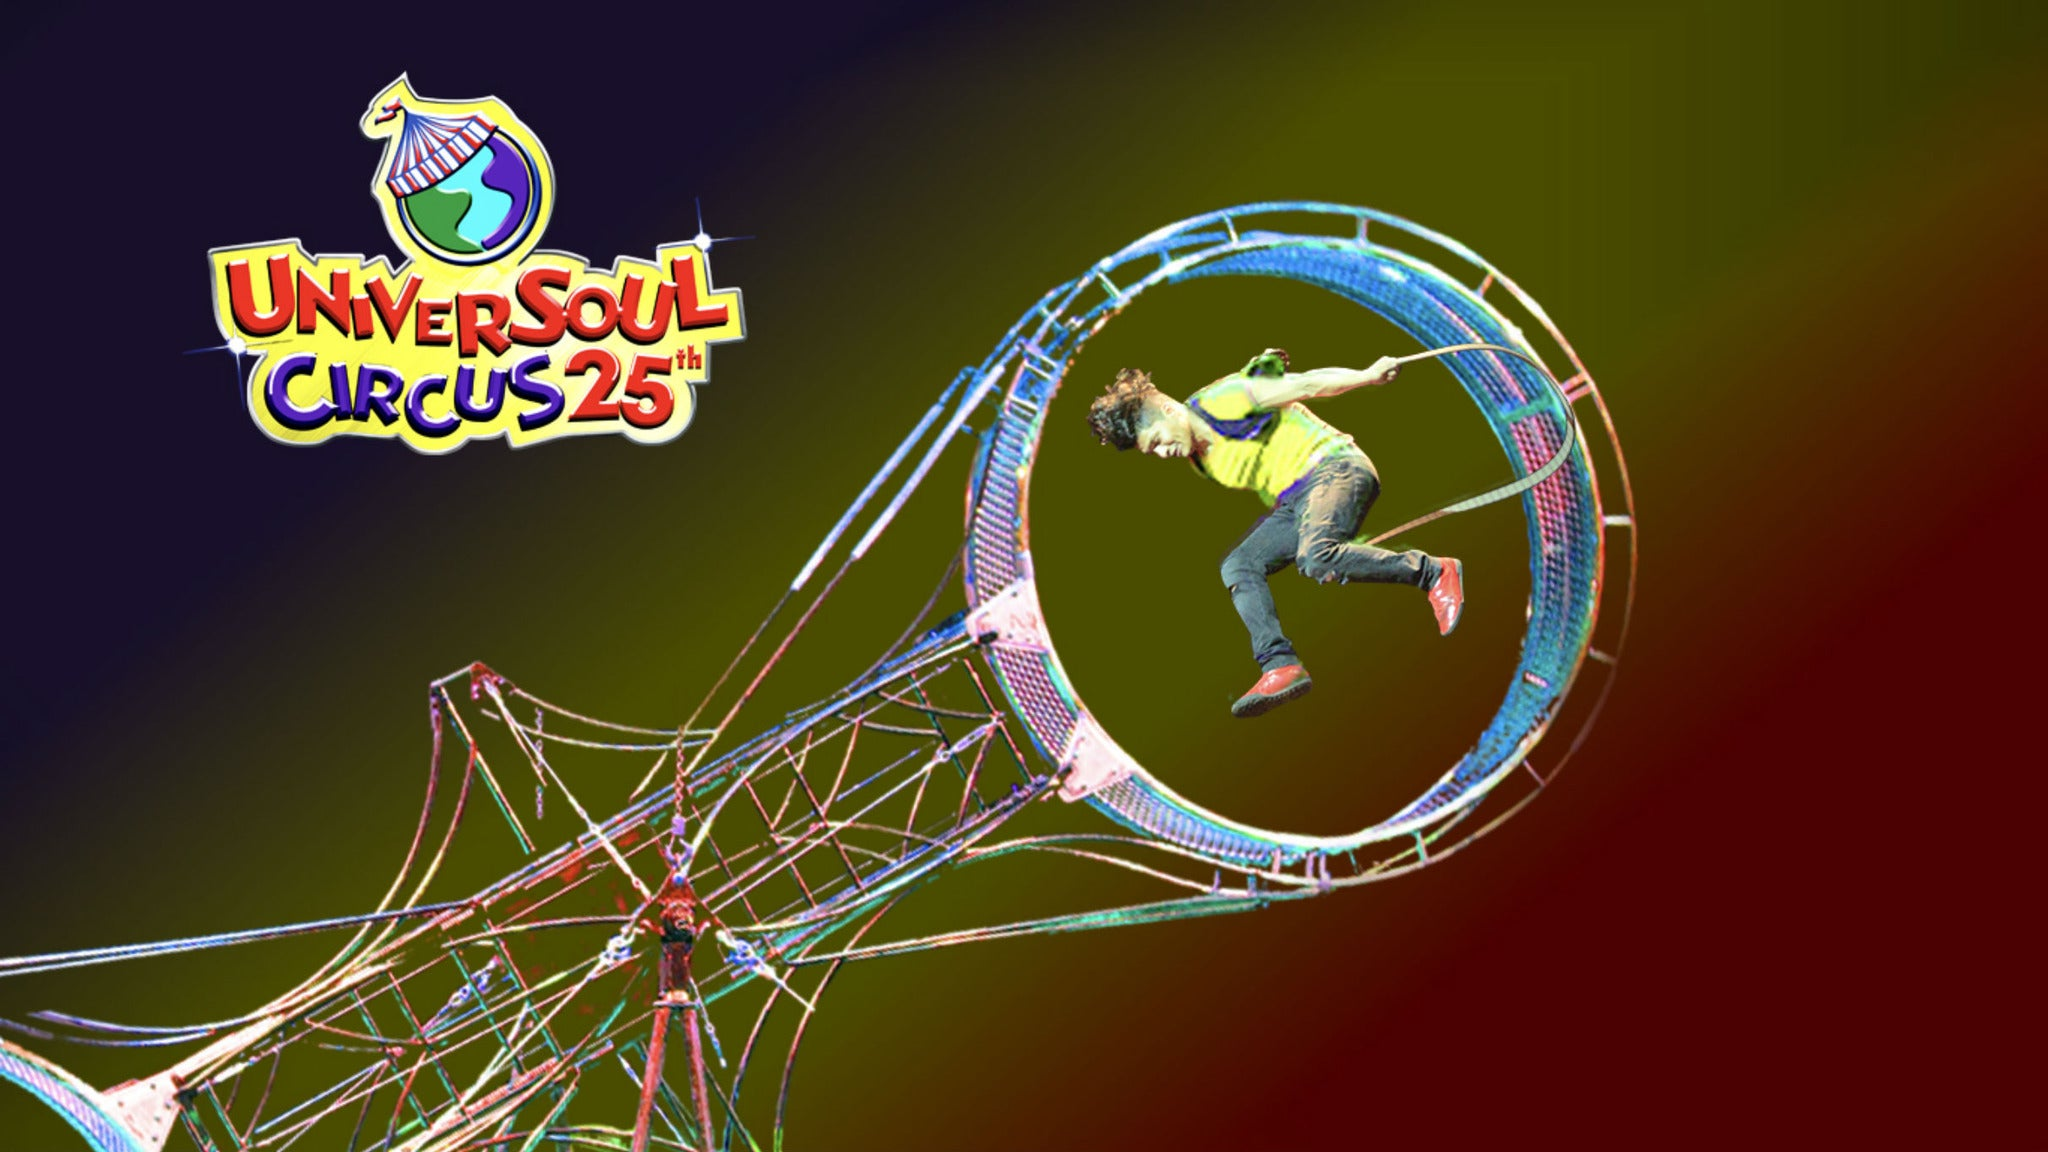 UniverSoul Circus at Butler Stadium